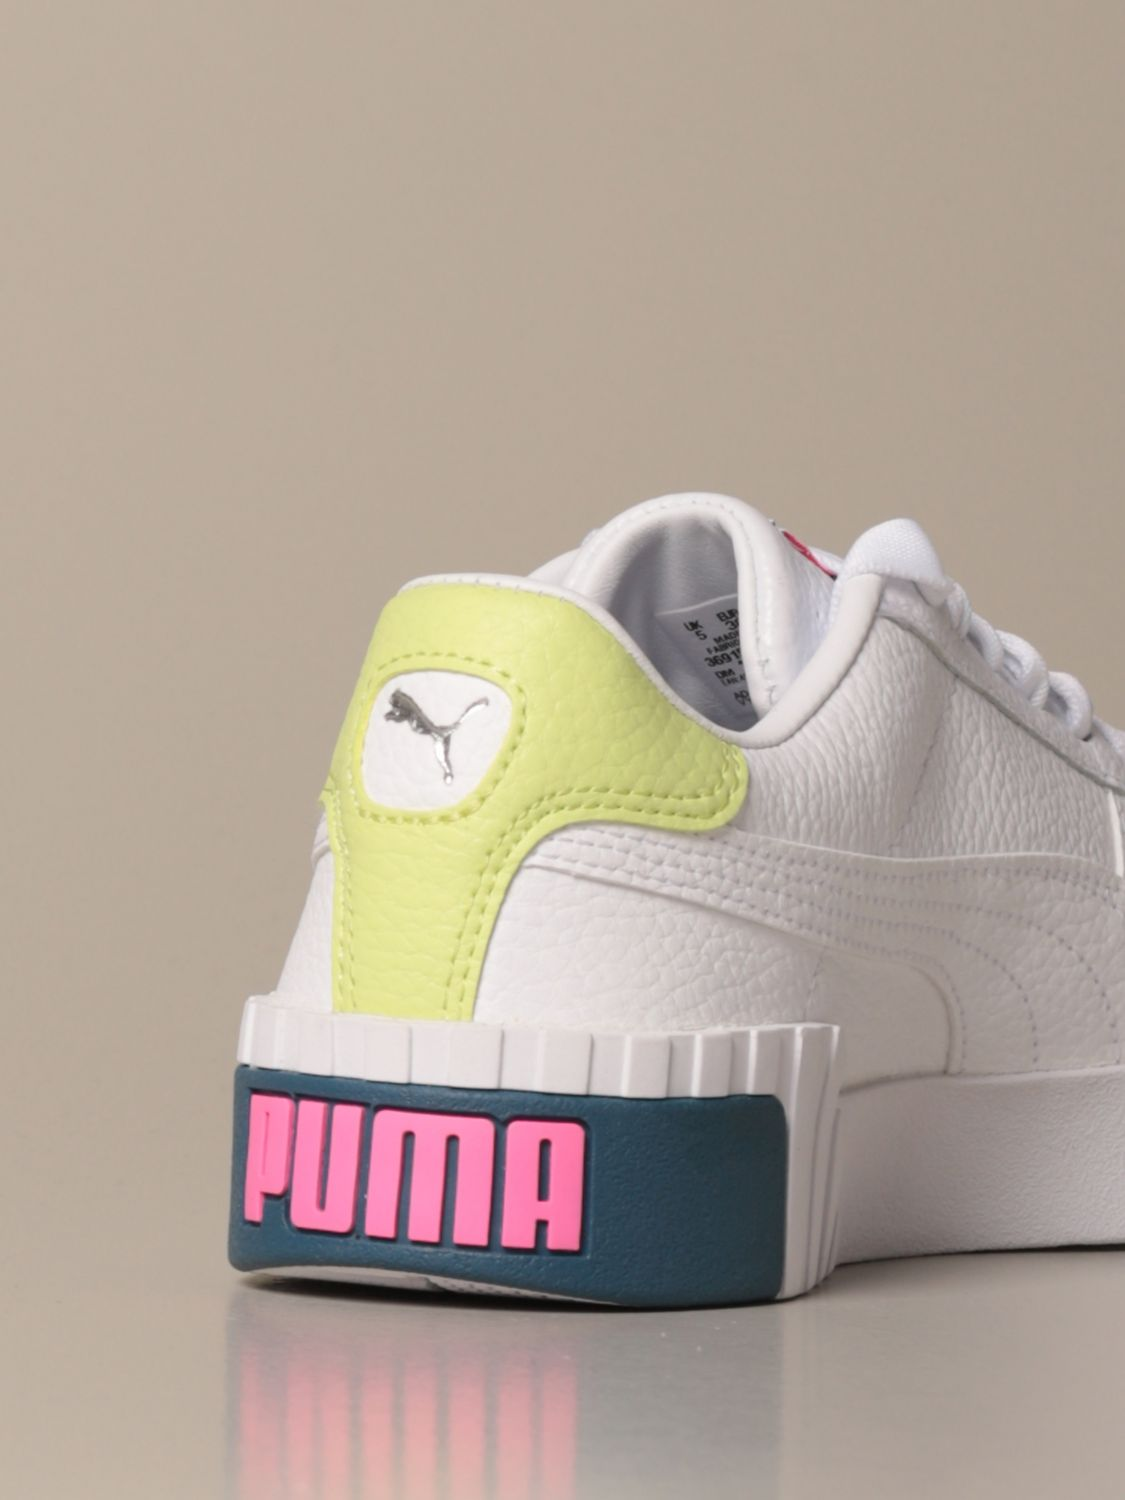 Cali wn's Puma perforated leather sneakers